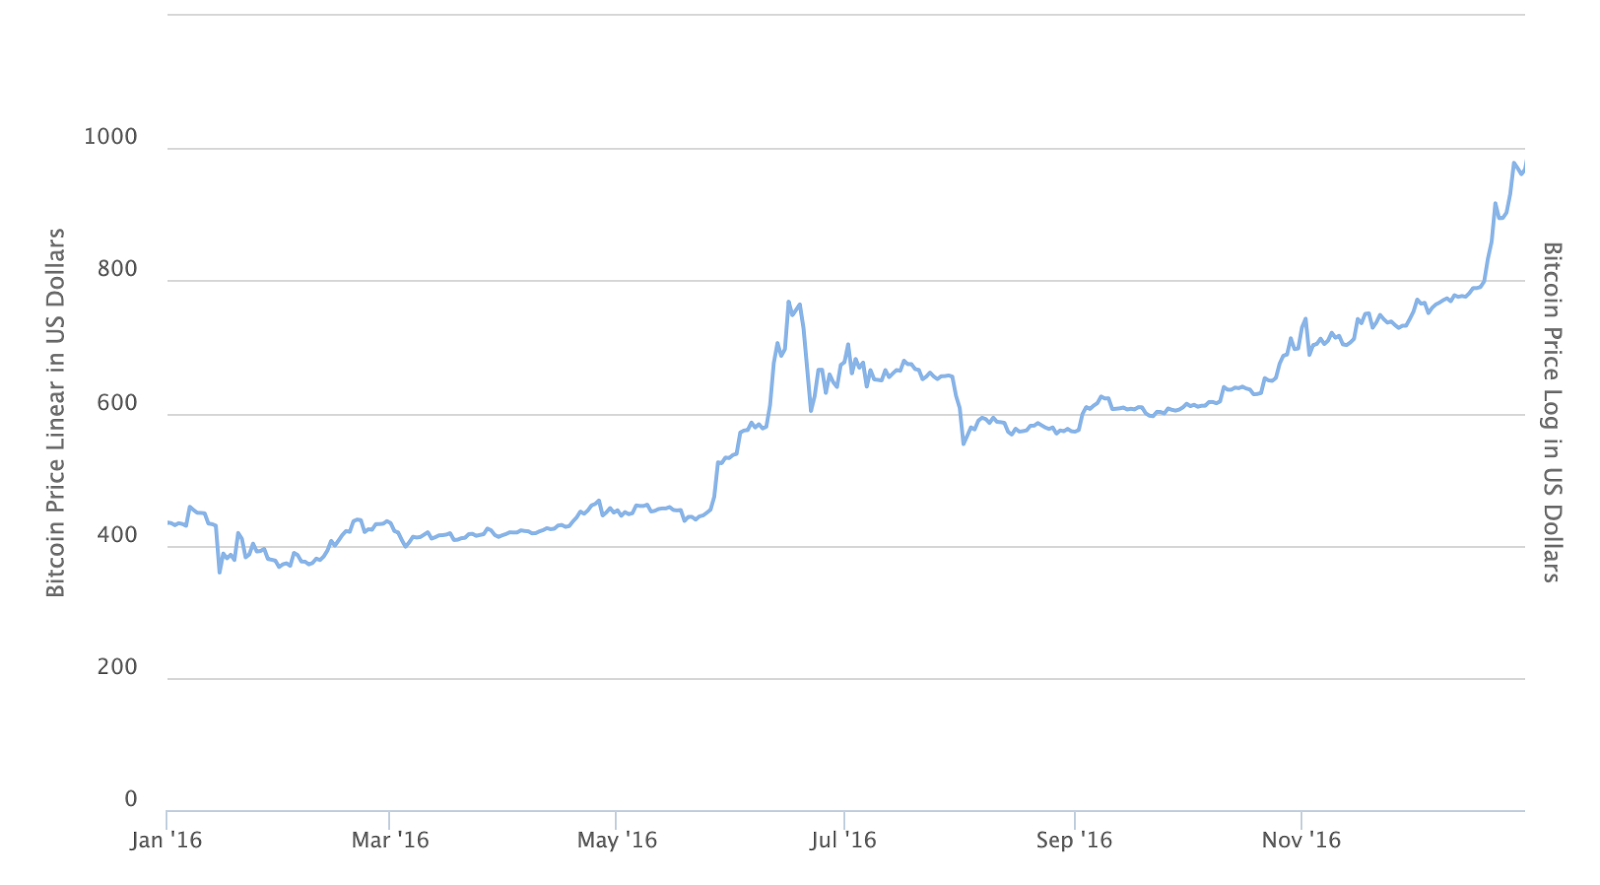 Bitcoin price in 2016